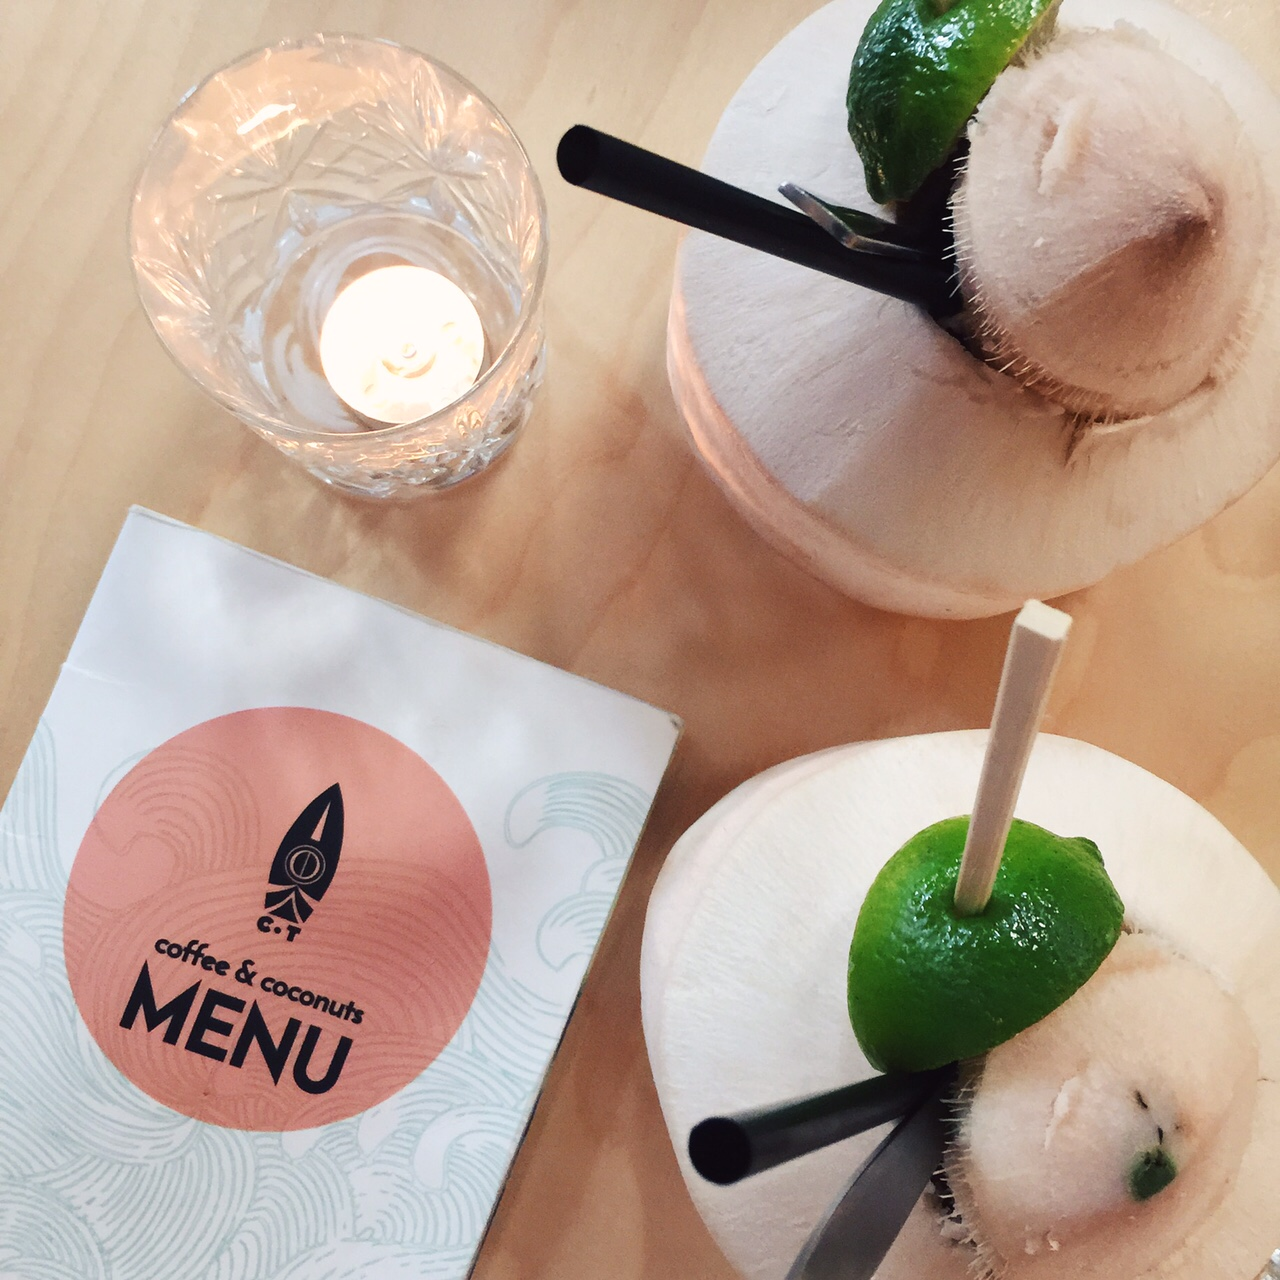 Coffee & Coconuts, Amsterdam | The Style Scribe